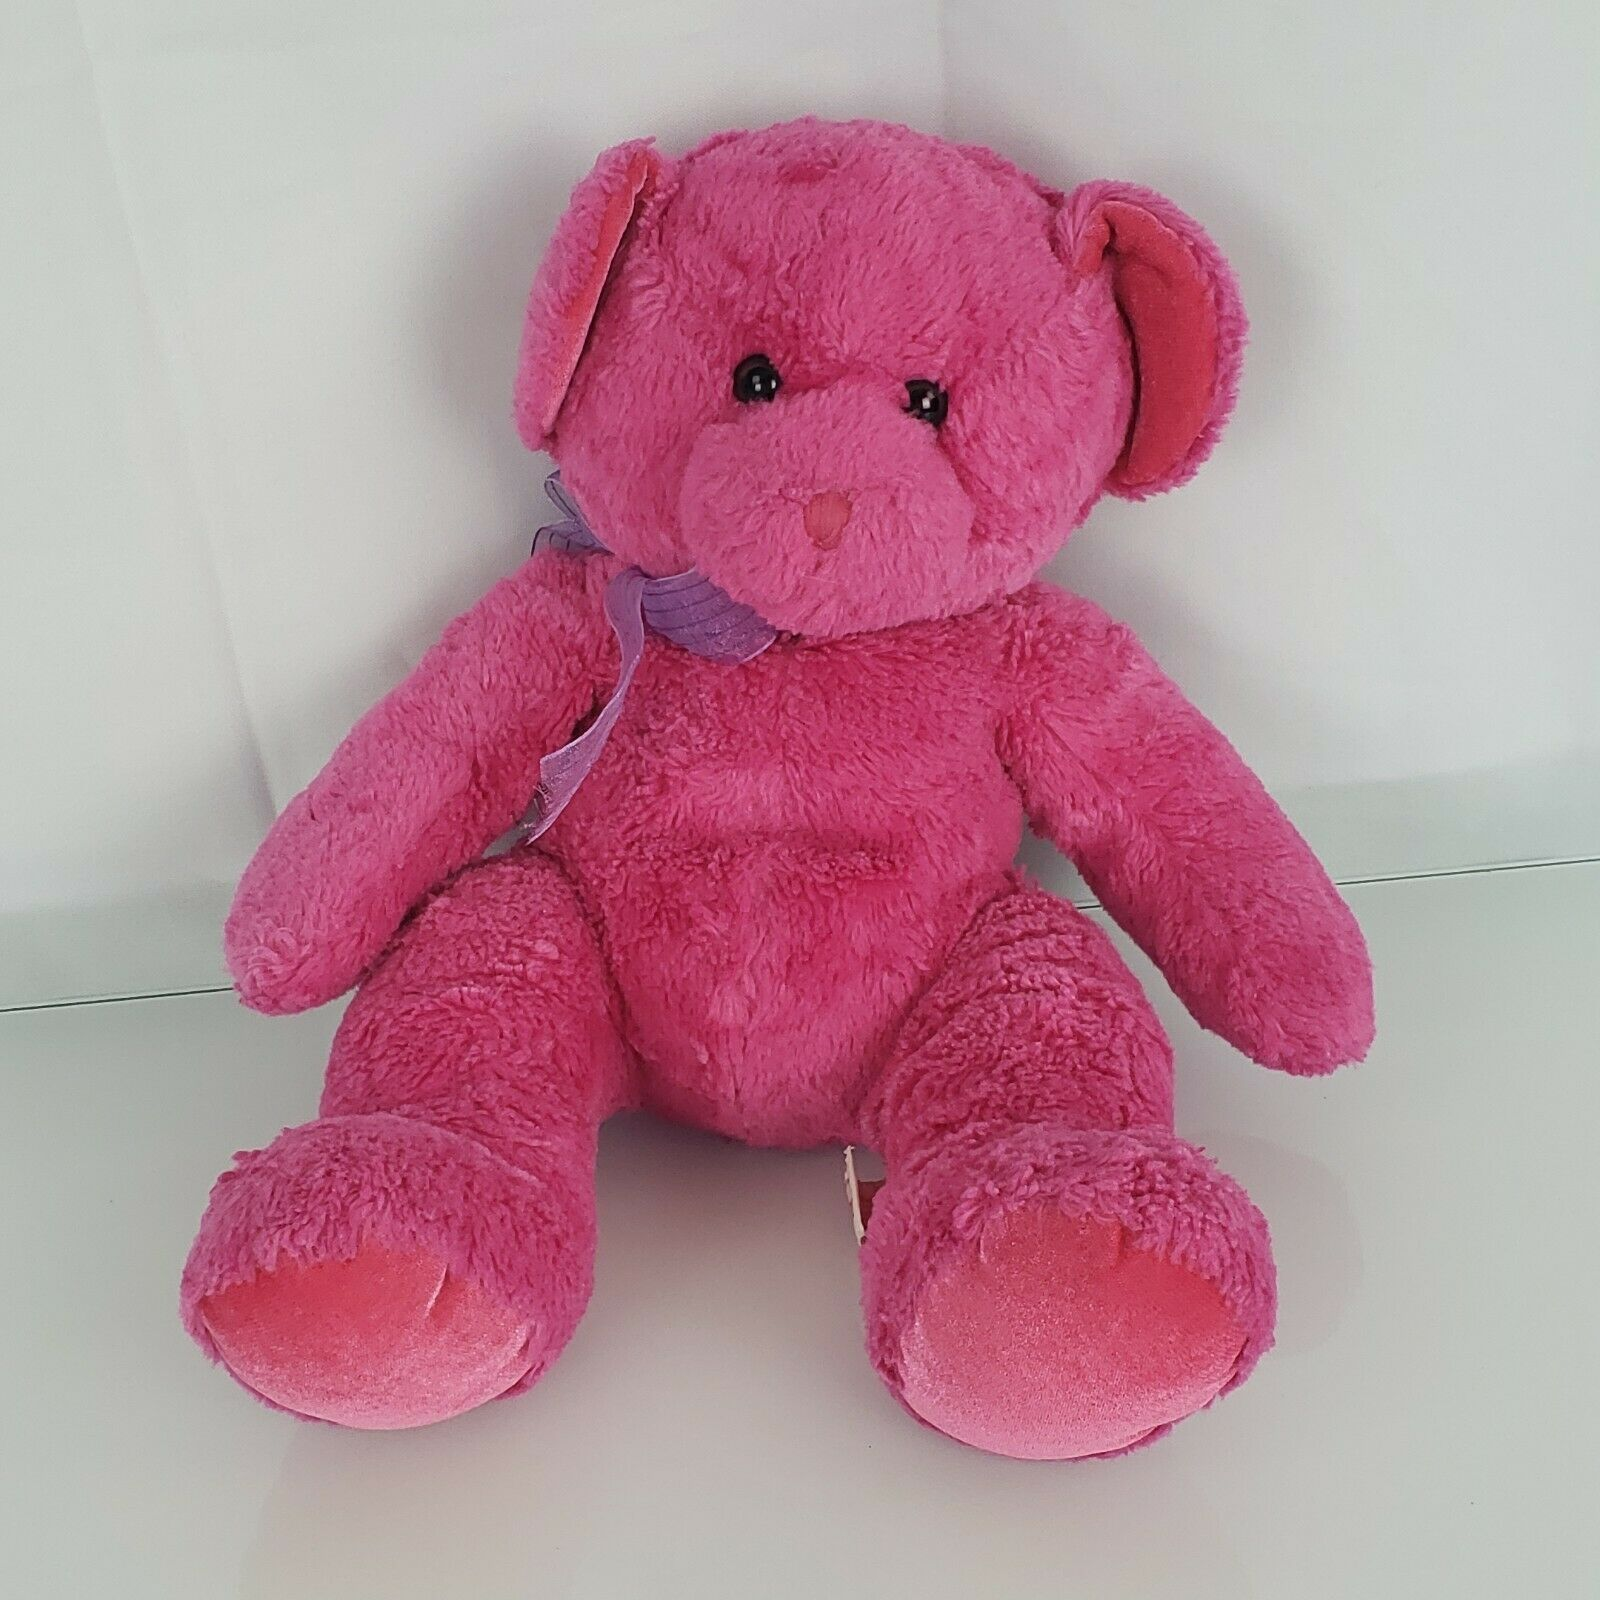 "Primary image for Russ Berrie Venus Stuffed Plush Fuchsia Hot Pink Teddy Bear 10"" 14"""